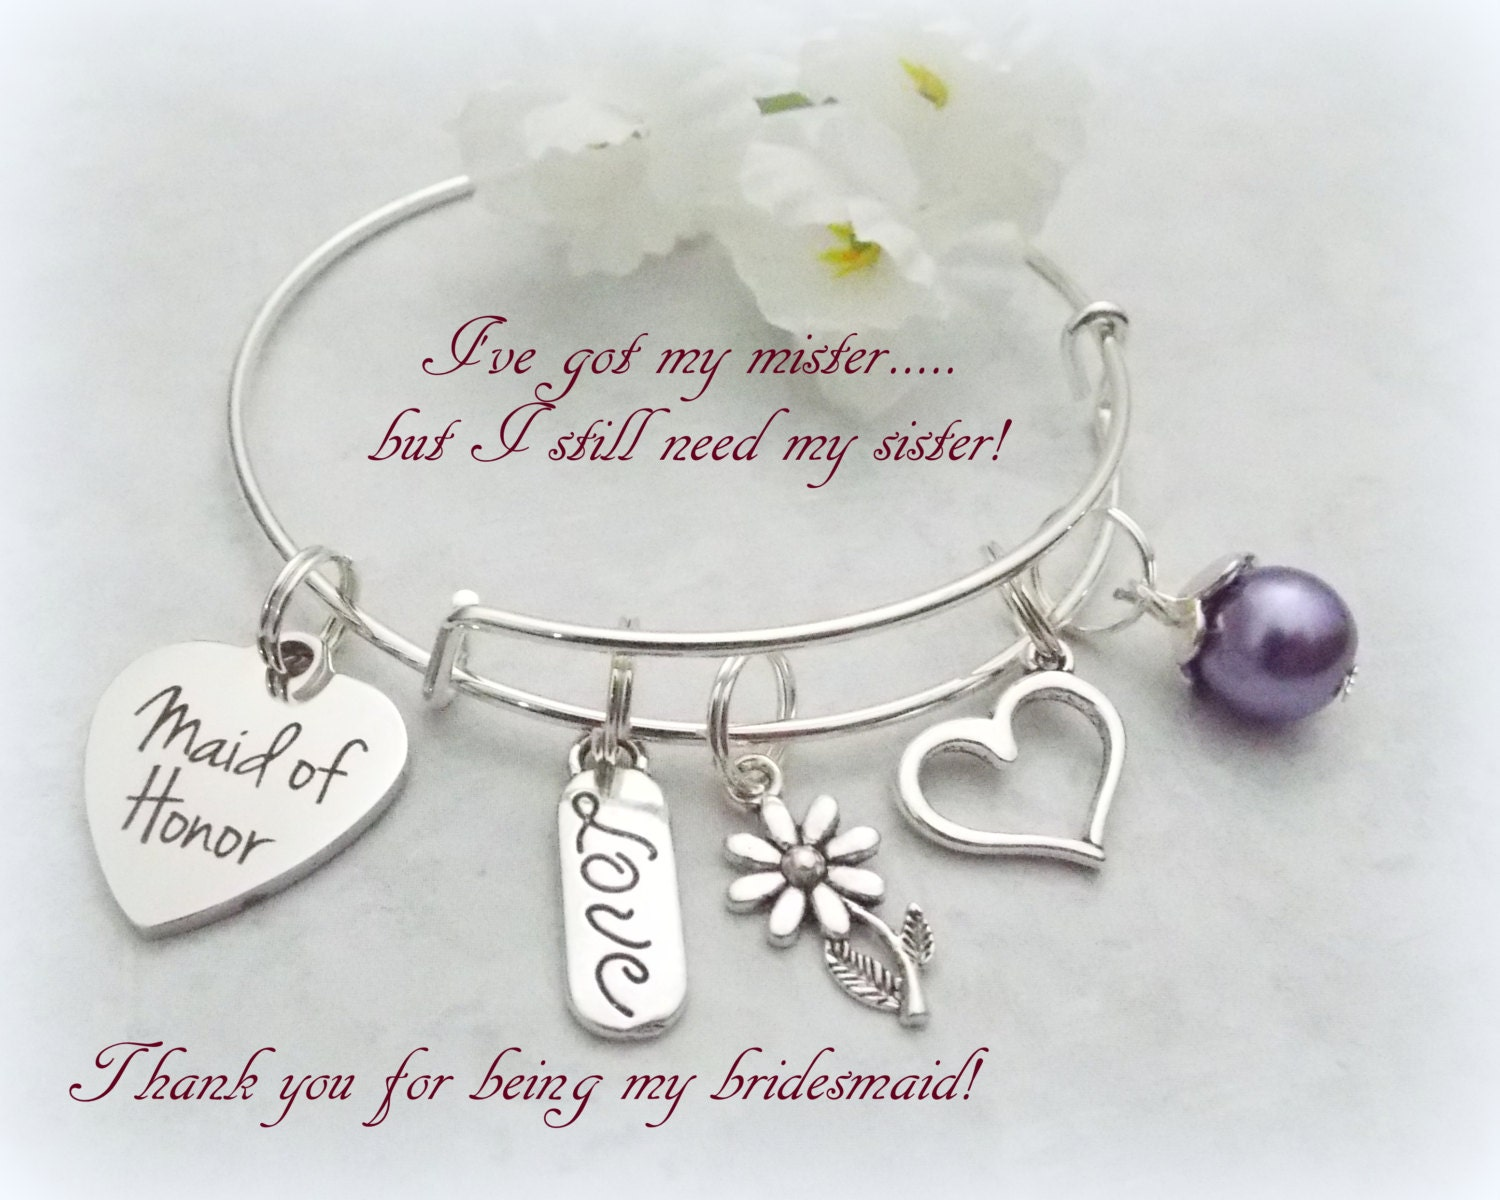 Wedding Gifts From Maid Of Honor To Bride: Bride Gifts Maid Of Honor Gift Maid Of Honor Bracelet Gift